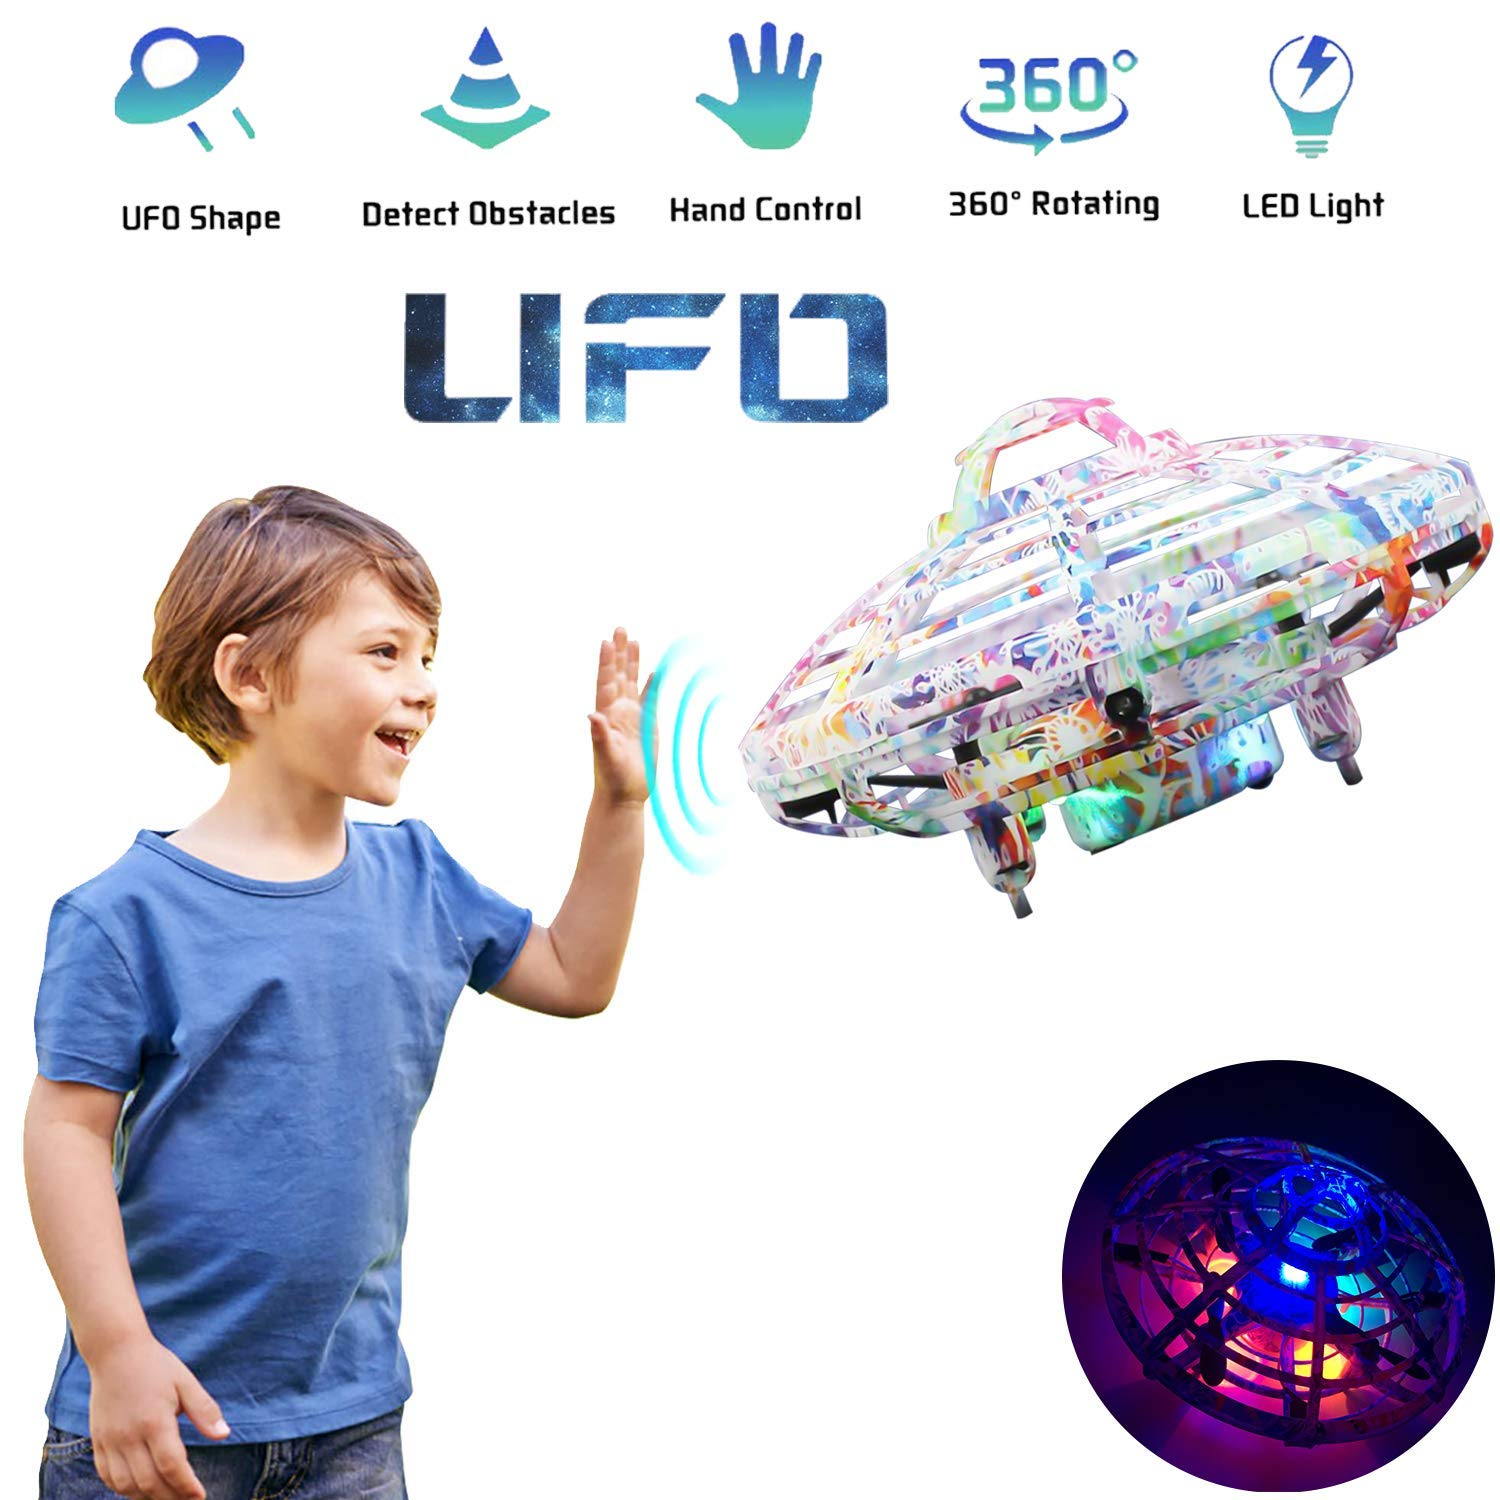 Flying Ball Toy, Cool UFO Hand-Controlled Drone Quadcopter Flying RC Toy for Boys Girls Valentines Gift,Colorful Flashing LED Lights Interactive Infrared Induction Helicopter Ball with 360Rotating by FUNSEA